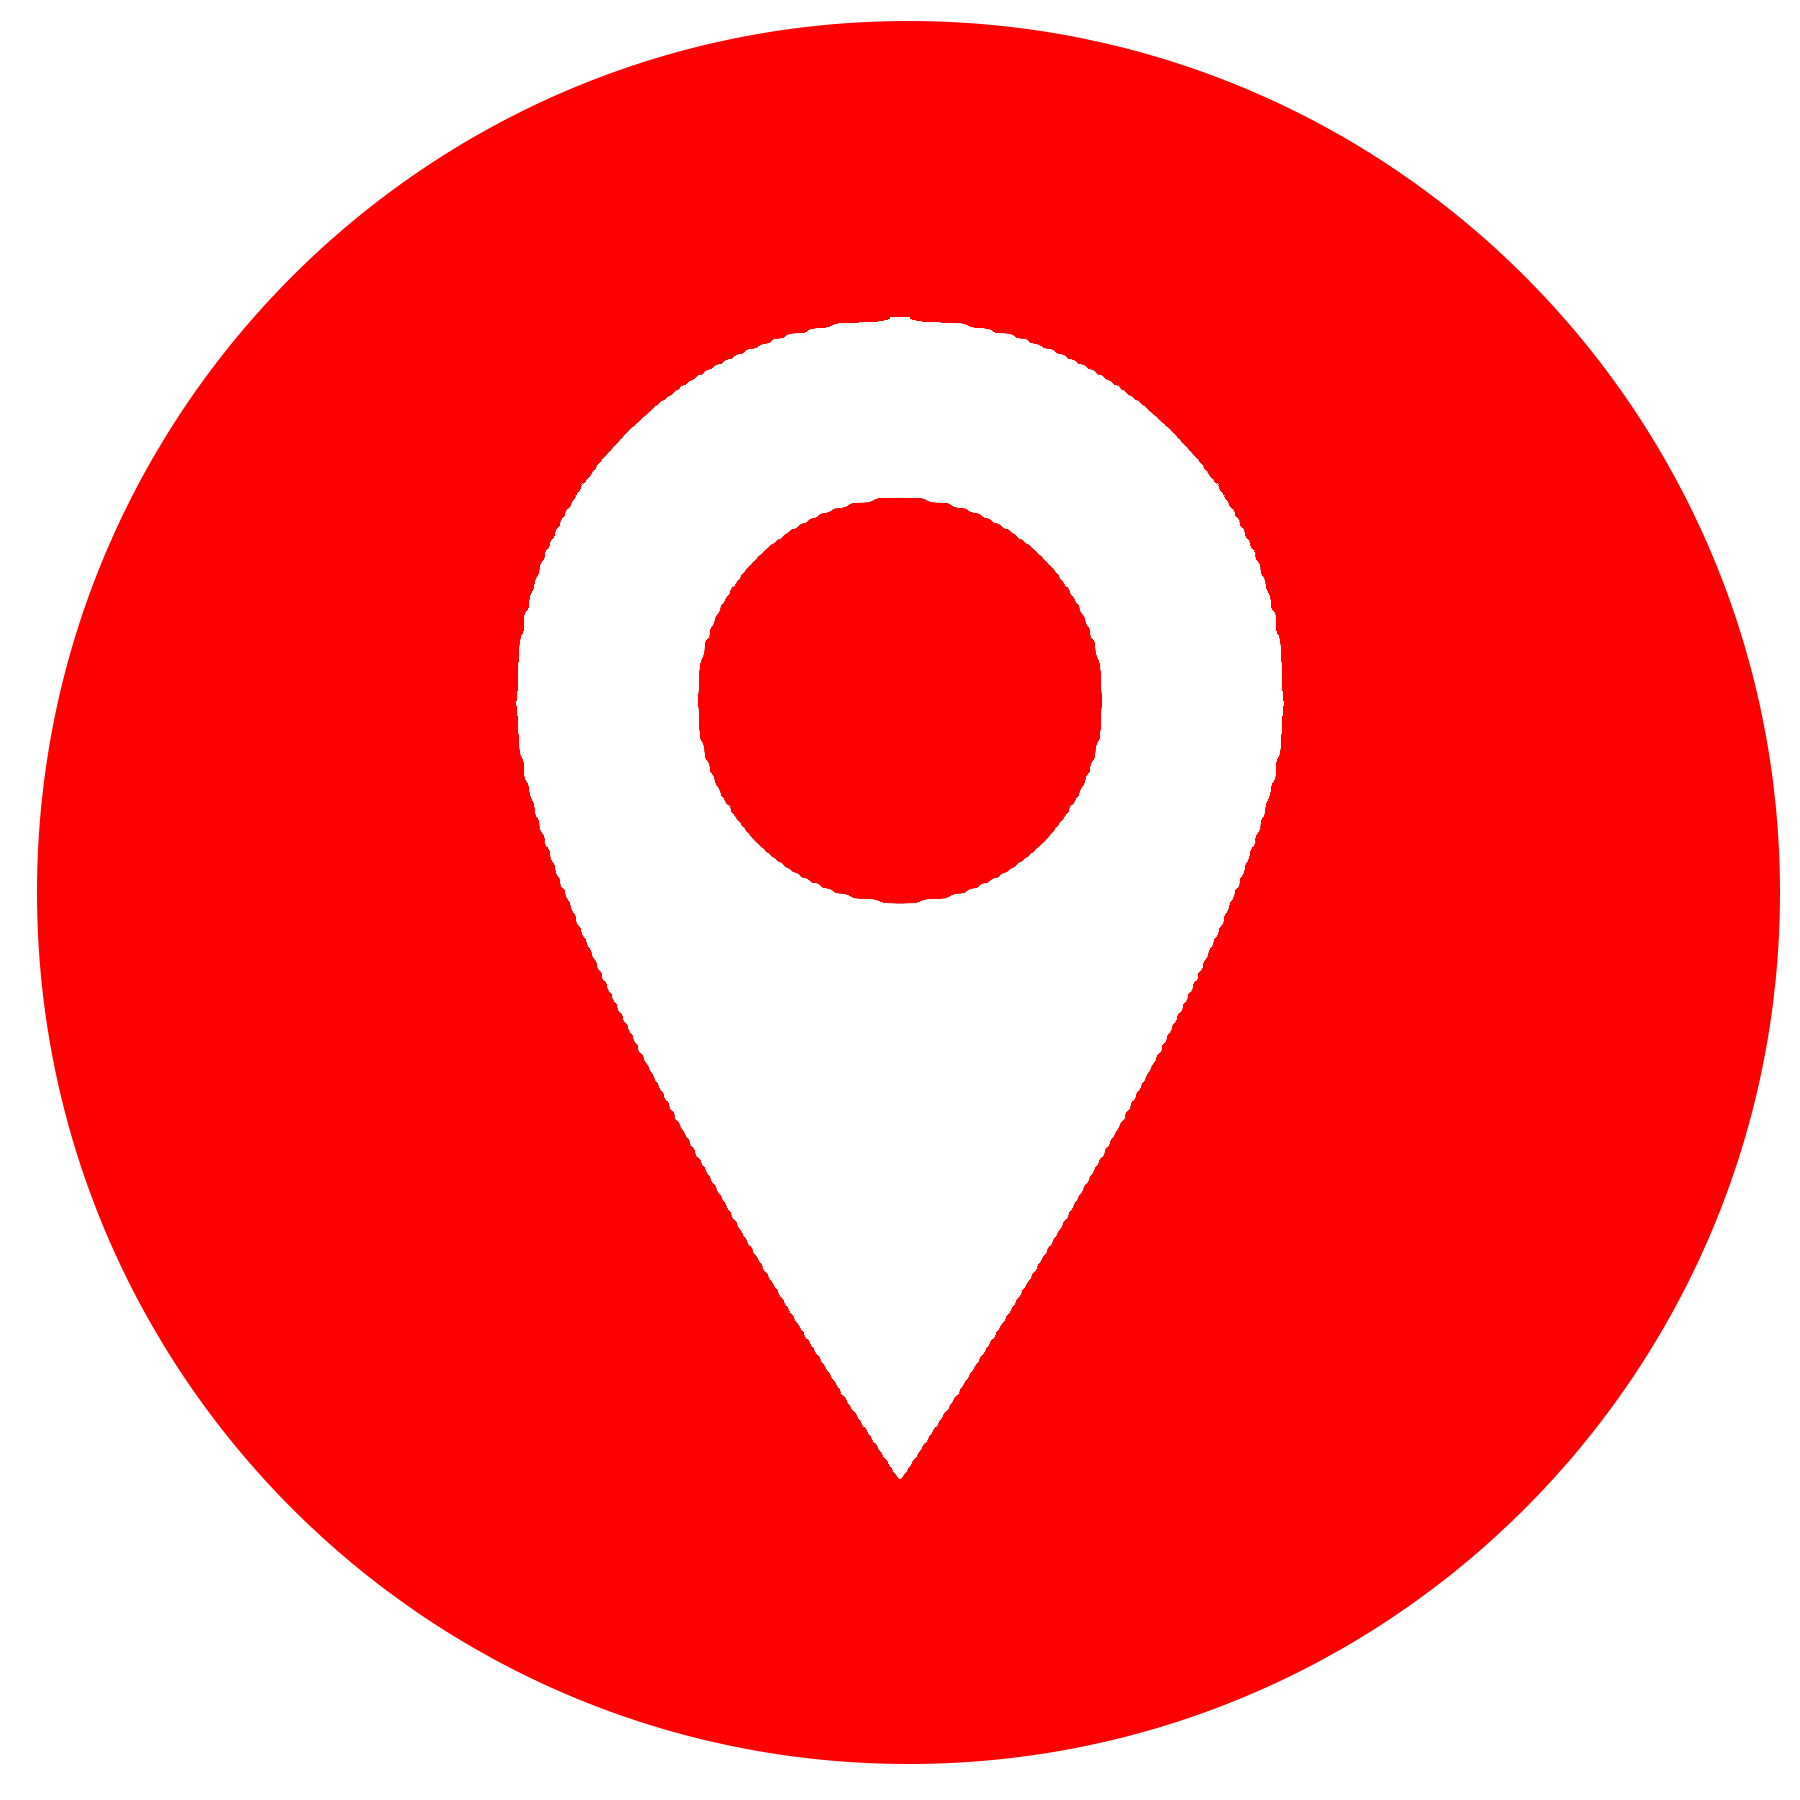 1800x1800 Location Icon Png. Location Map Pin Red21 Location Icon Png